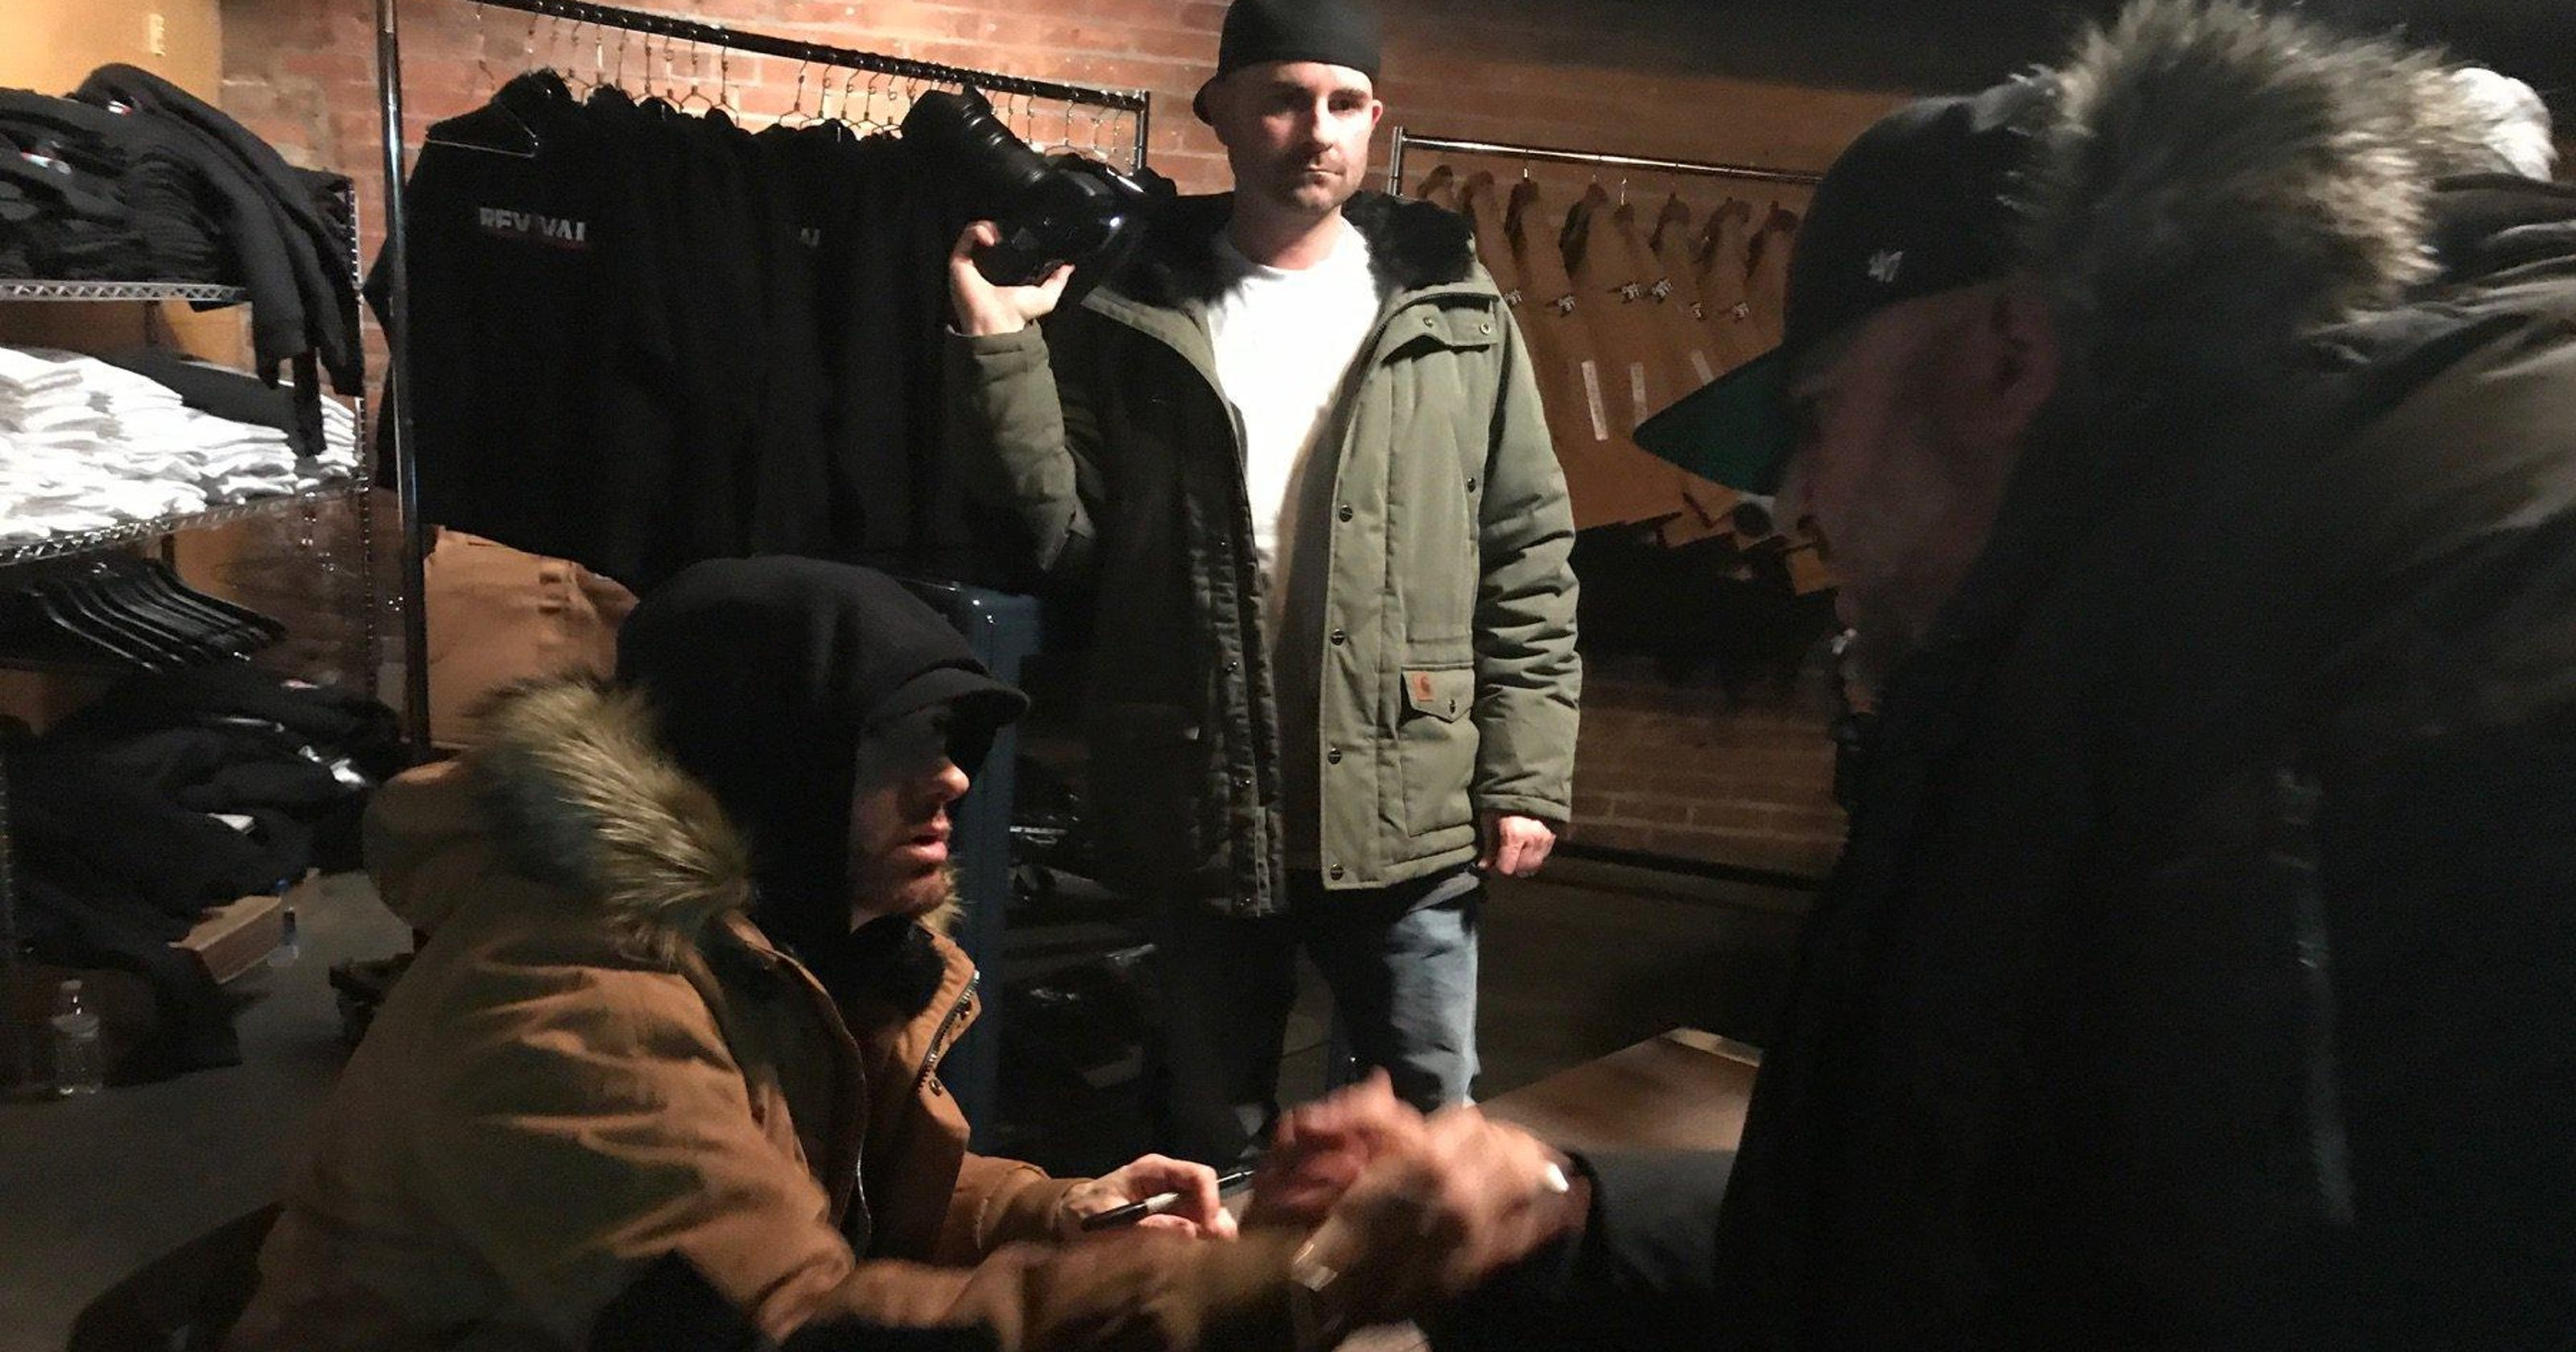 d99879f2e37b5 Eminem drops by  Mom s Spaghetti  pop-up at The Shelter